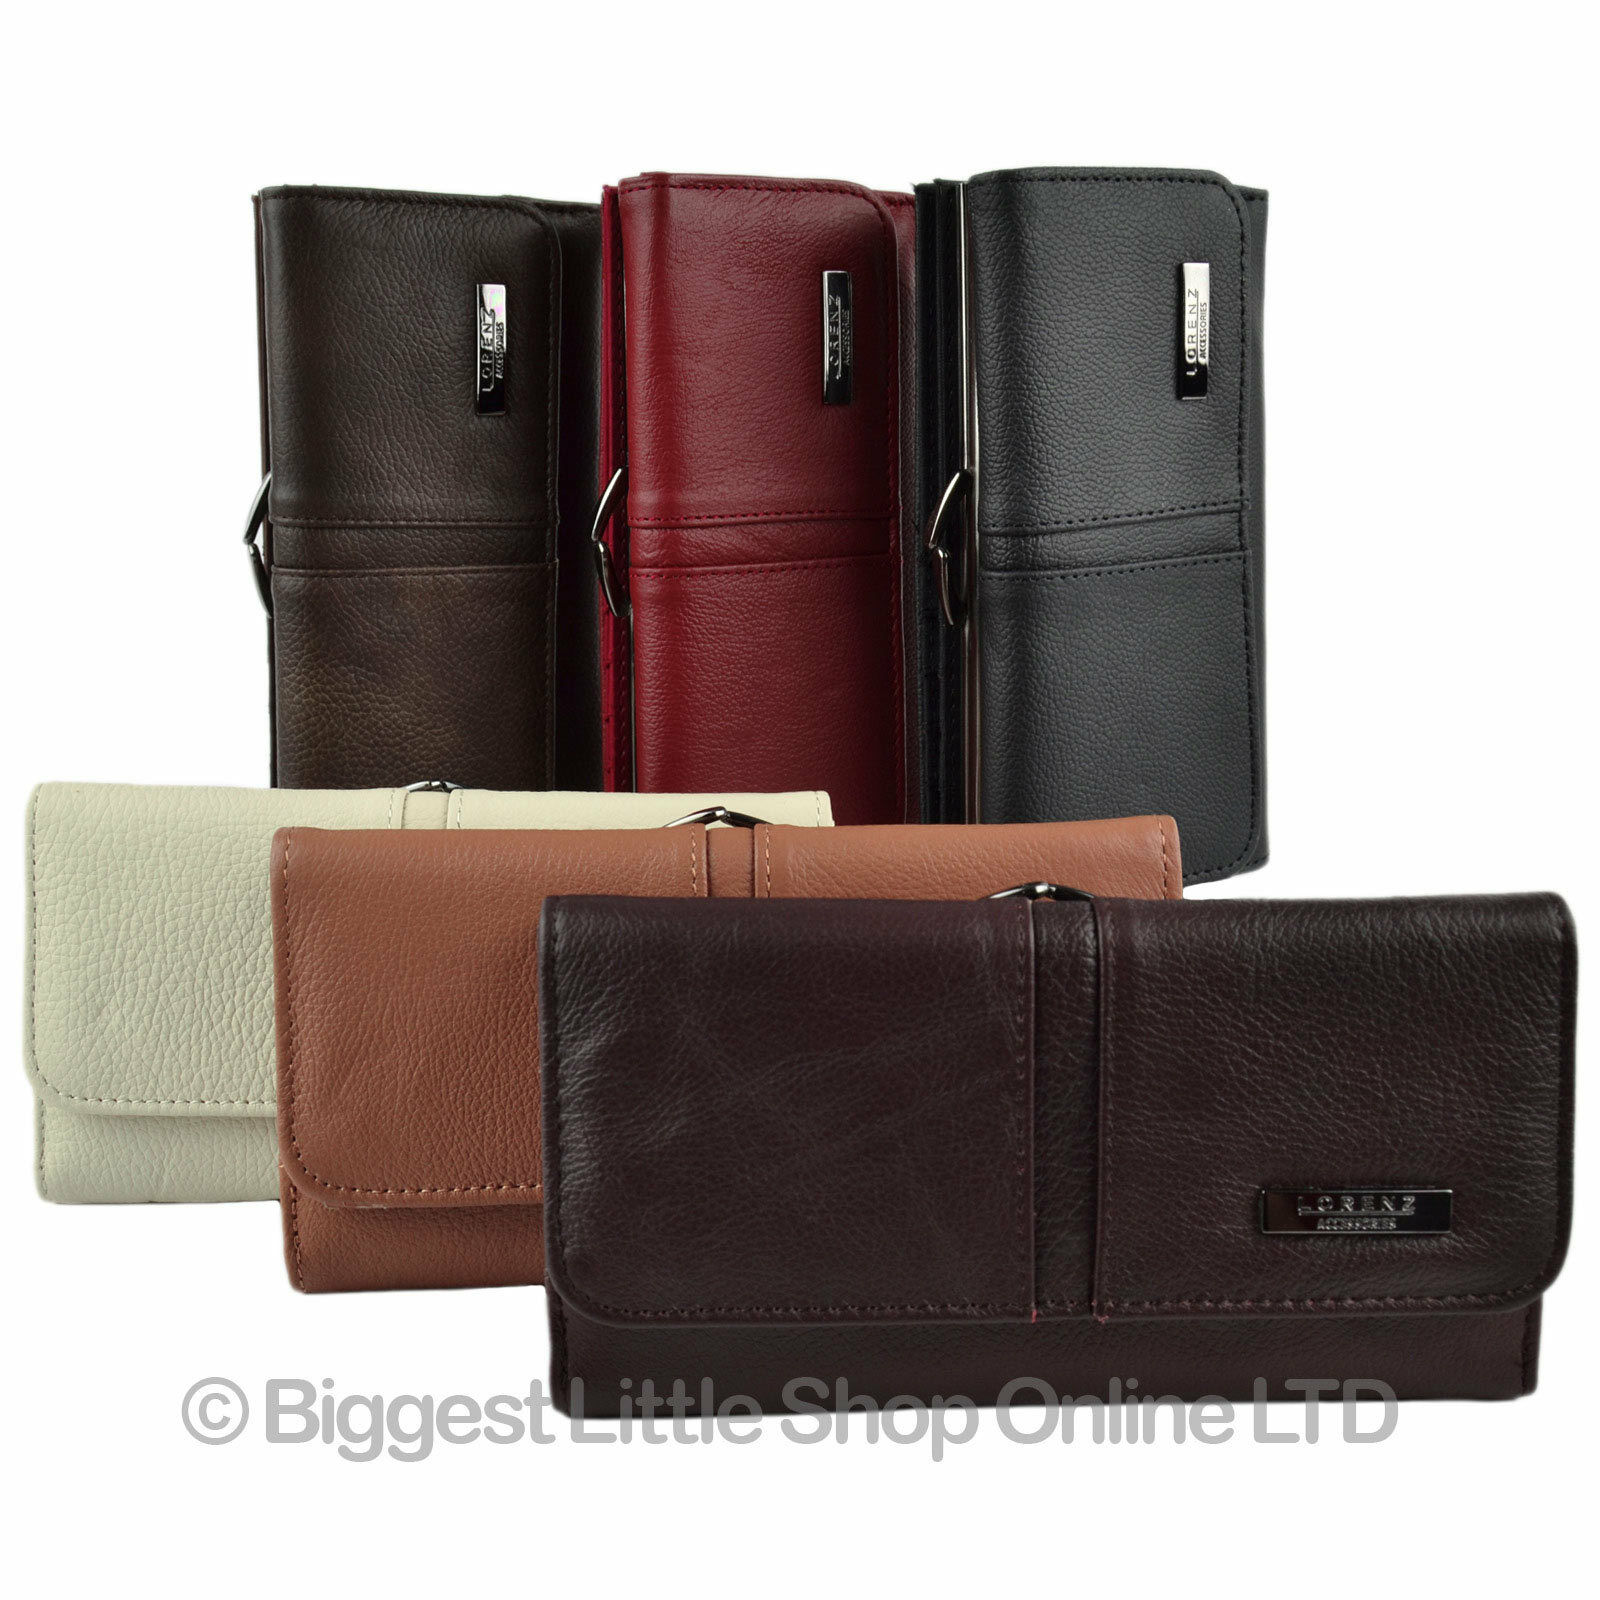 4bf269d2a3 Details about Ladies Large Leather Purse Wallet Clasp Coin Section in 6  Colours Multiple Slots